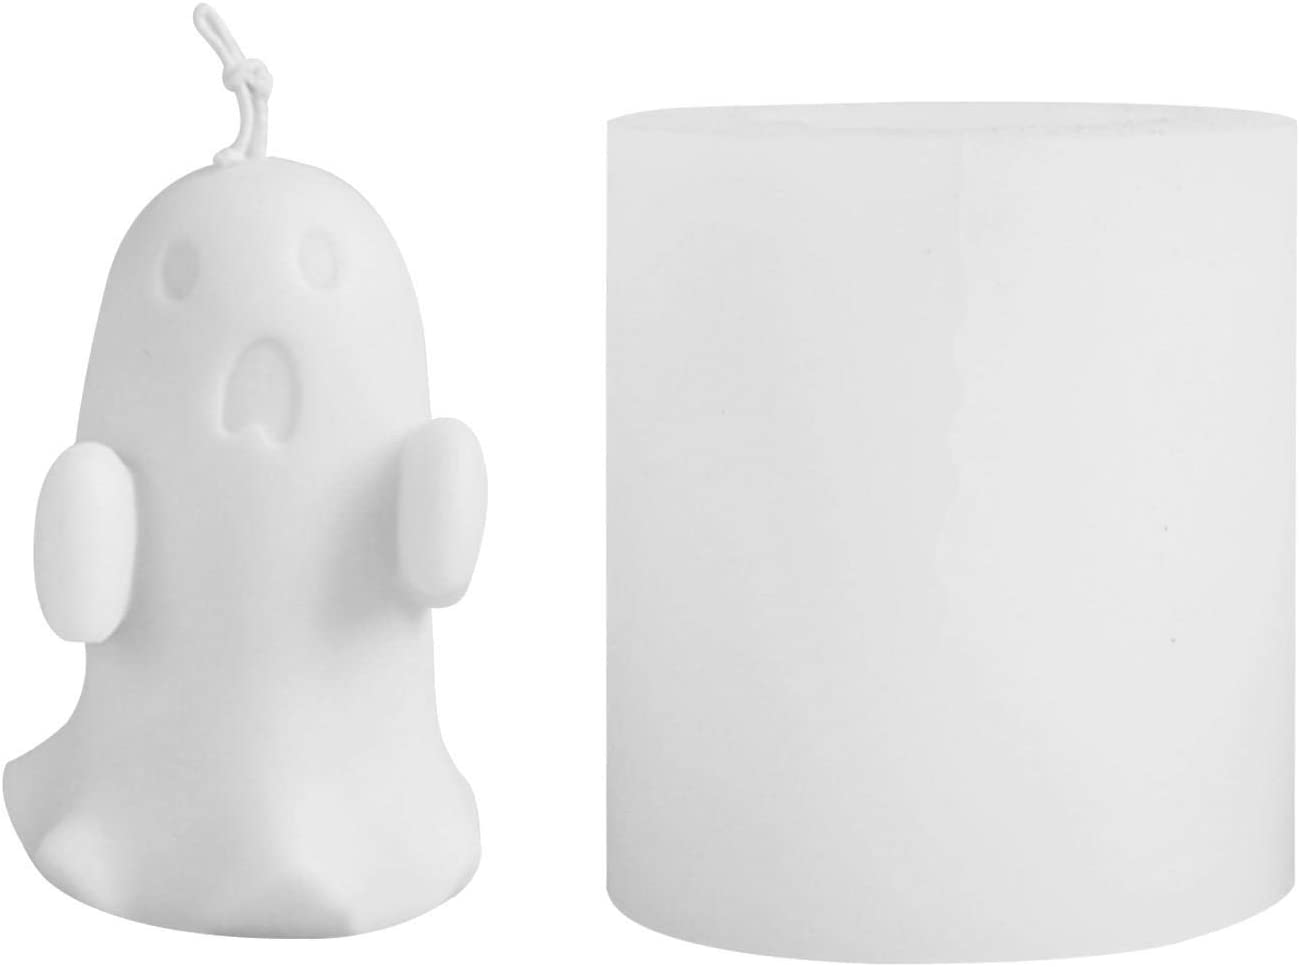 daiyanjing 3D Skull Candle Outlet ☆ Free Shipping Molds Silicone Direct sale of manufacturer Mold DIY Ghost